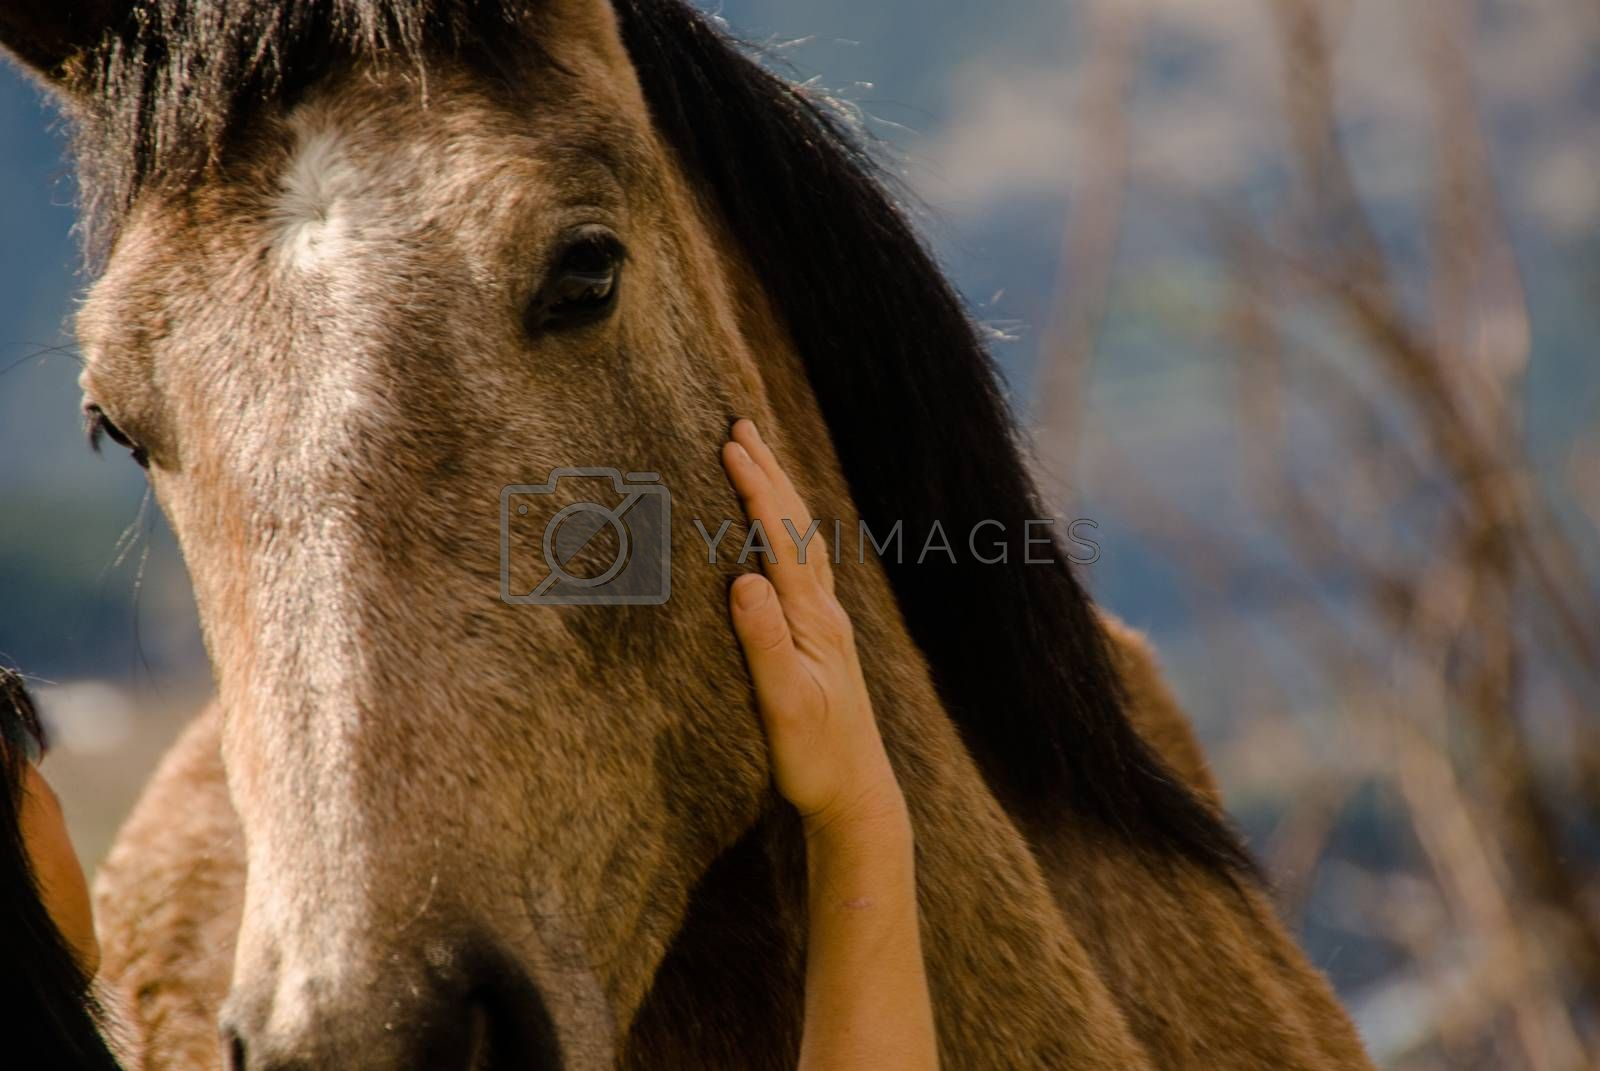 cheek of a horse caressed by the hand of a woman